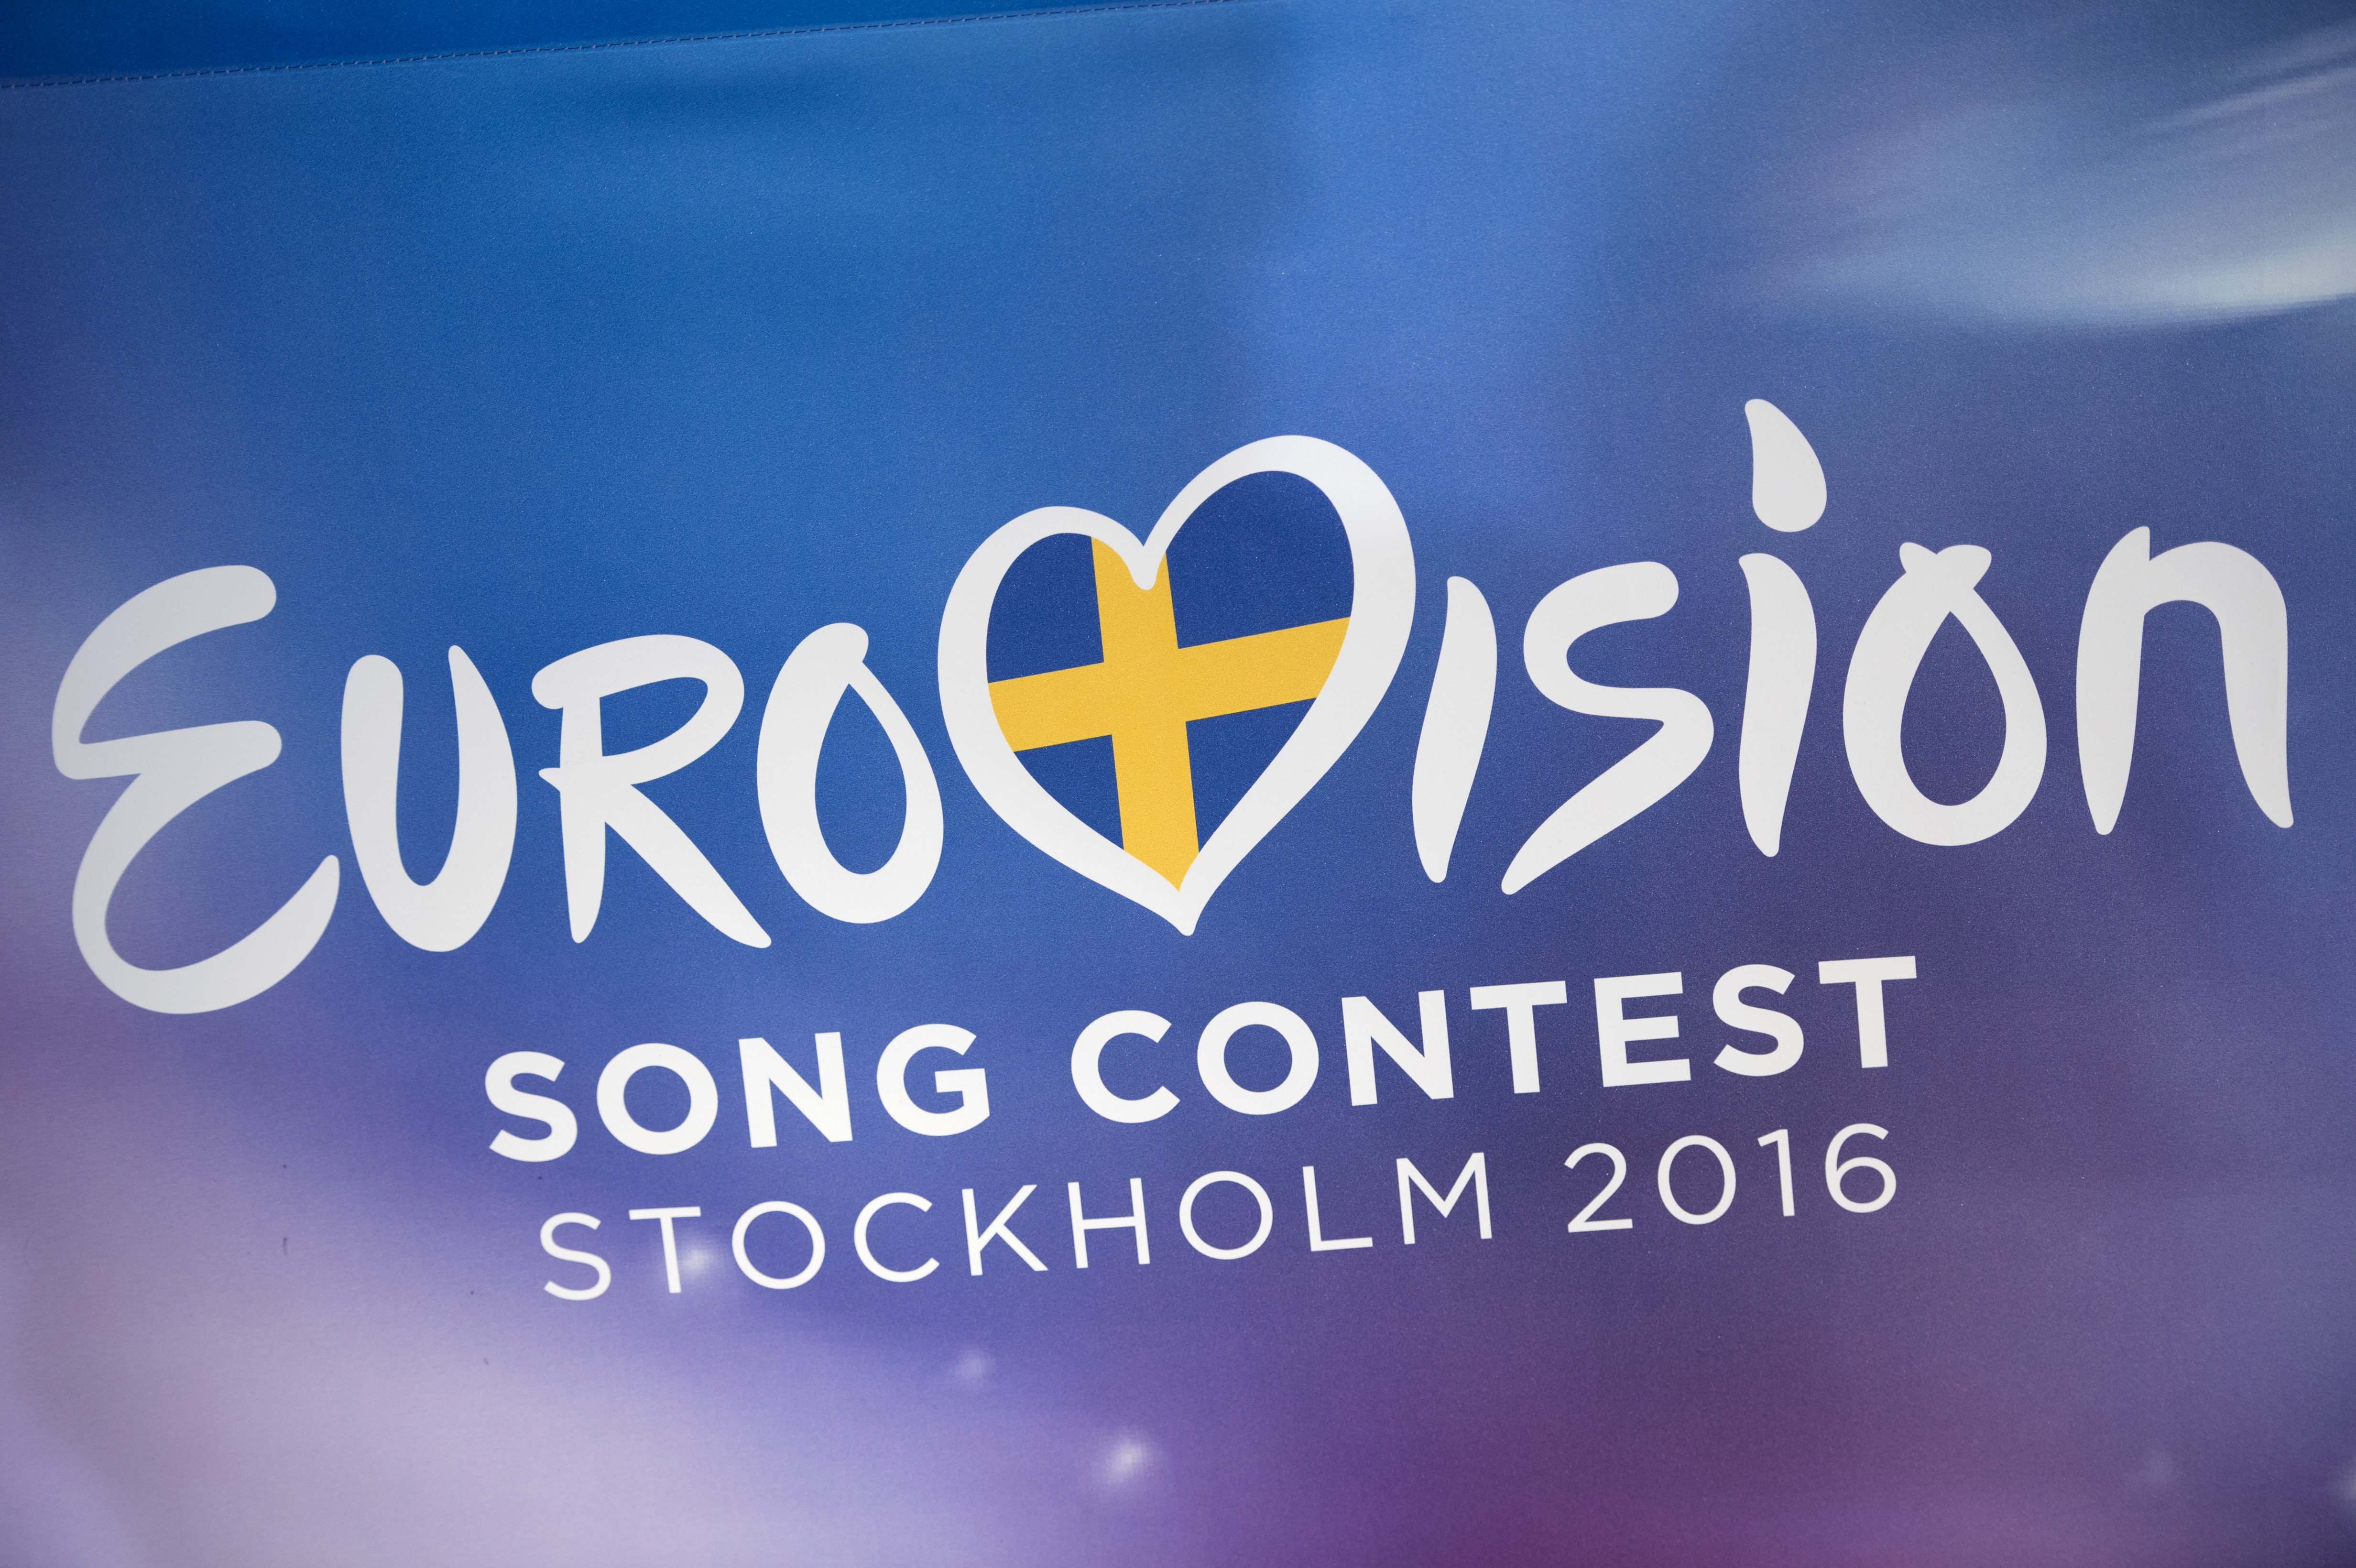 The logo of the Eurovison Song Contest 2106 is seen during the draw for the semi-finals of Eurovision Song Contest at Stockholm City Hall, Sweden, January 25, 2016. REUTERS/Henrik Montgomer/TT News Agency ATTENTION EDITORS - THIS IMAGE WAS PROVIDED BY A THIRD PARTY. FOR EDITORIAL USE ONLY. NOT FOR SALE FOR MARKETING OR ADVERTISING CAMPAIGNS. THIS PICTURE IS DISTRIBUTED EXACTLY AS RECEIVED BY REUTERS, AS A SERVICE TO CLIENTS. SWEDEN OUT. NO COMMERCIAL OR EDITORIAL SALES IN SWEDEN. NO COMMERCIAL SALES. - RTX23X7H